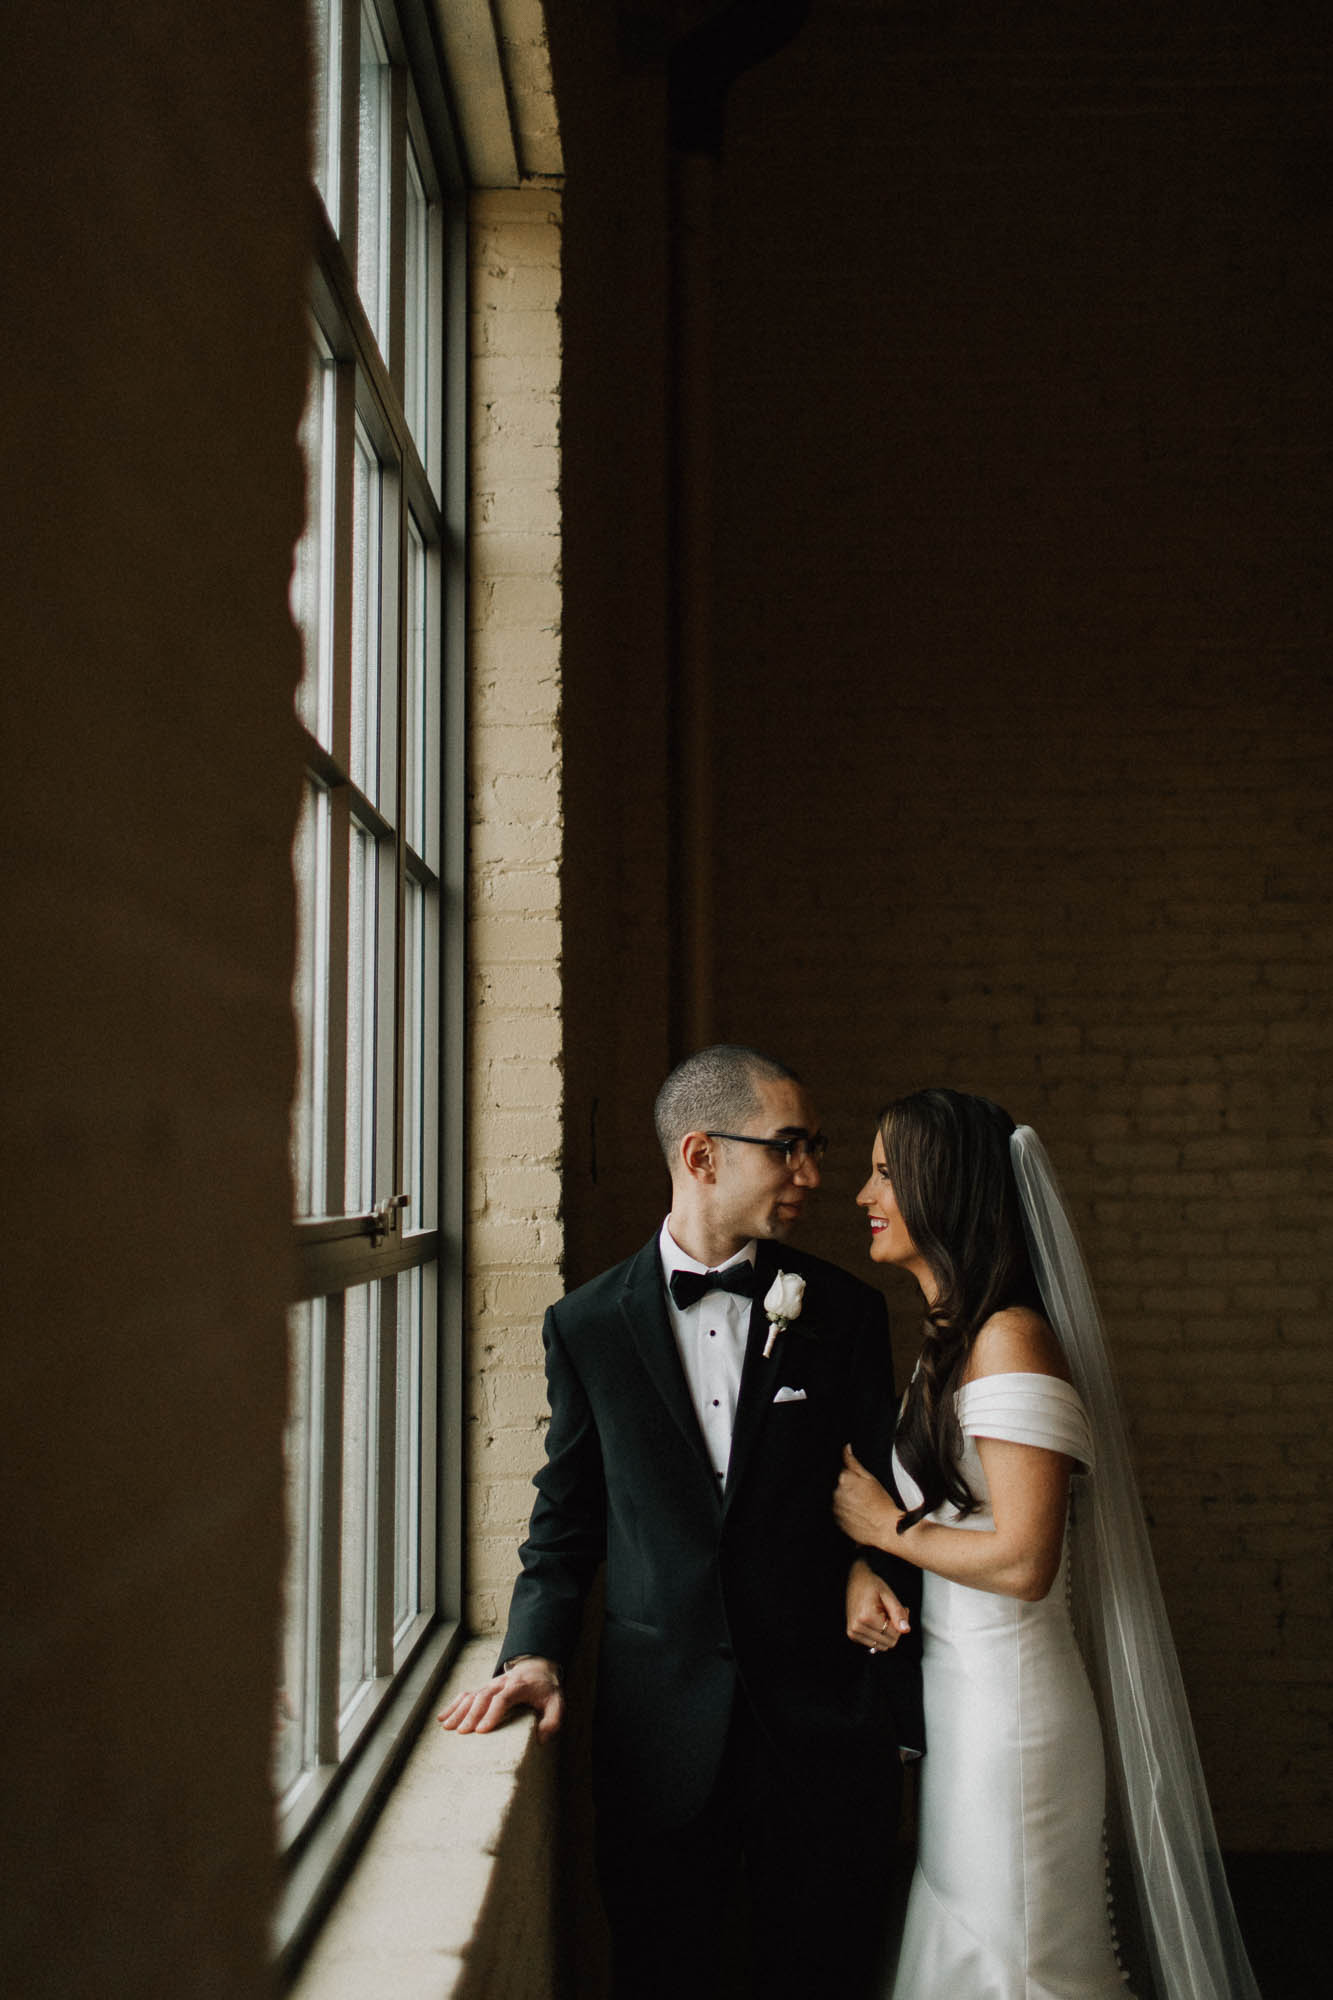 Bride Groom Window Light The Steam Plant